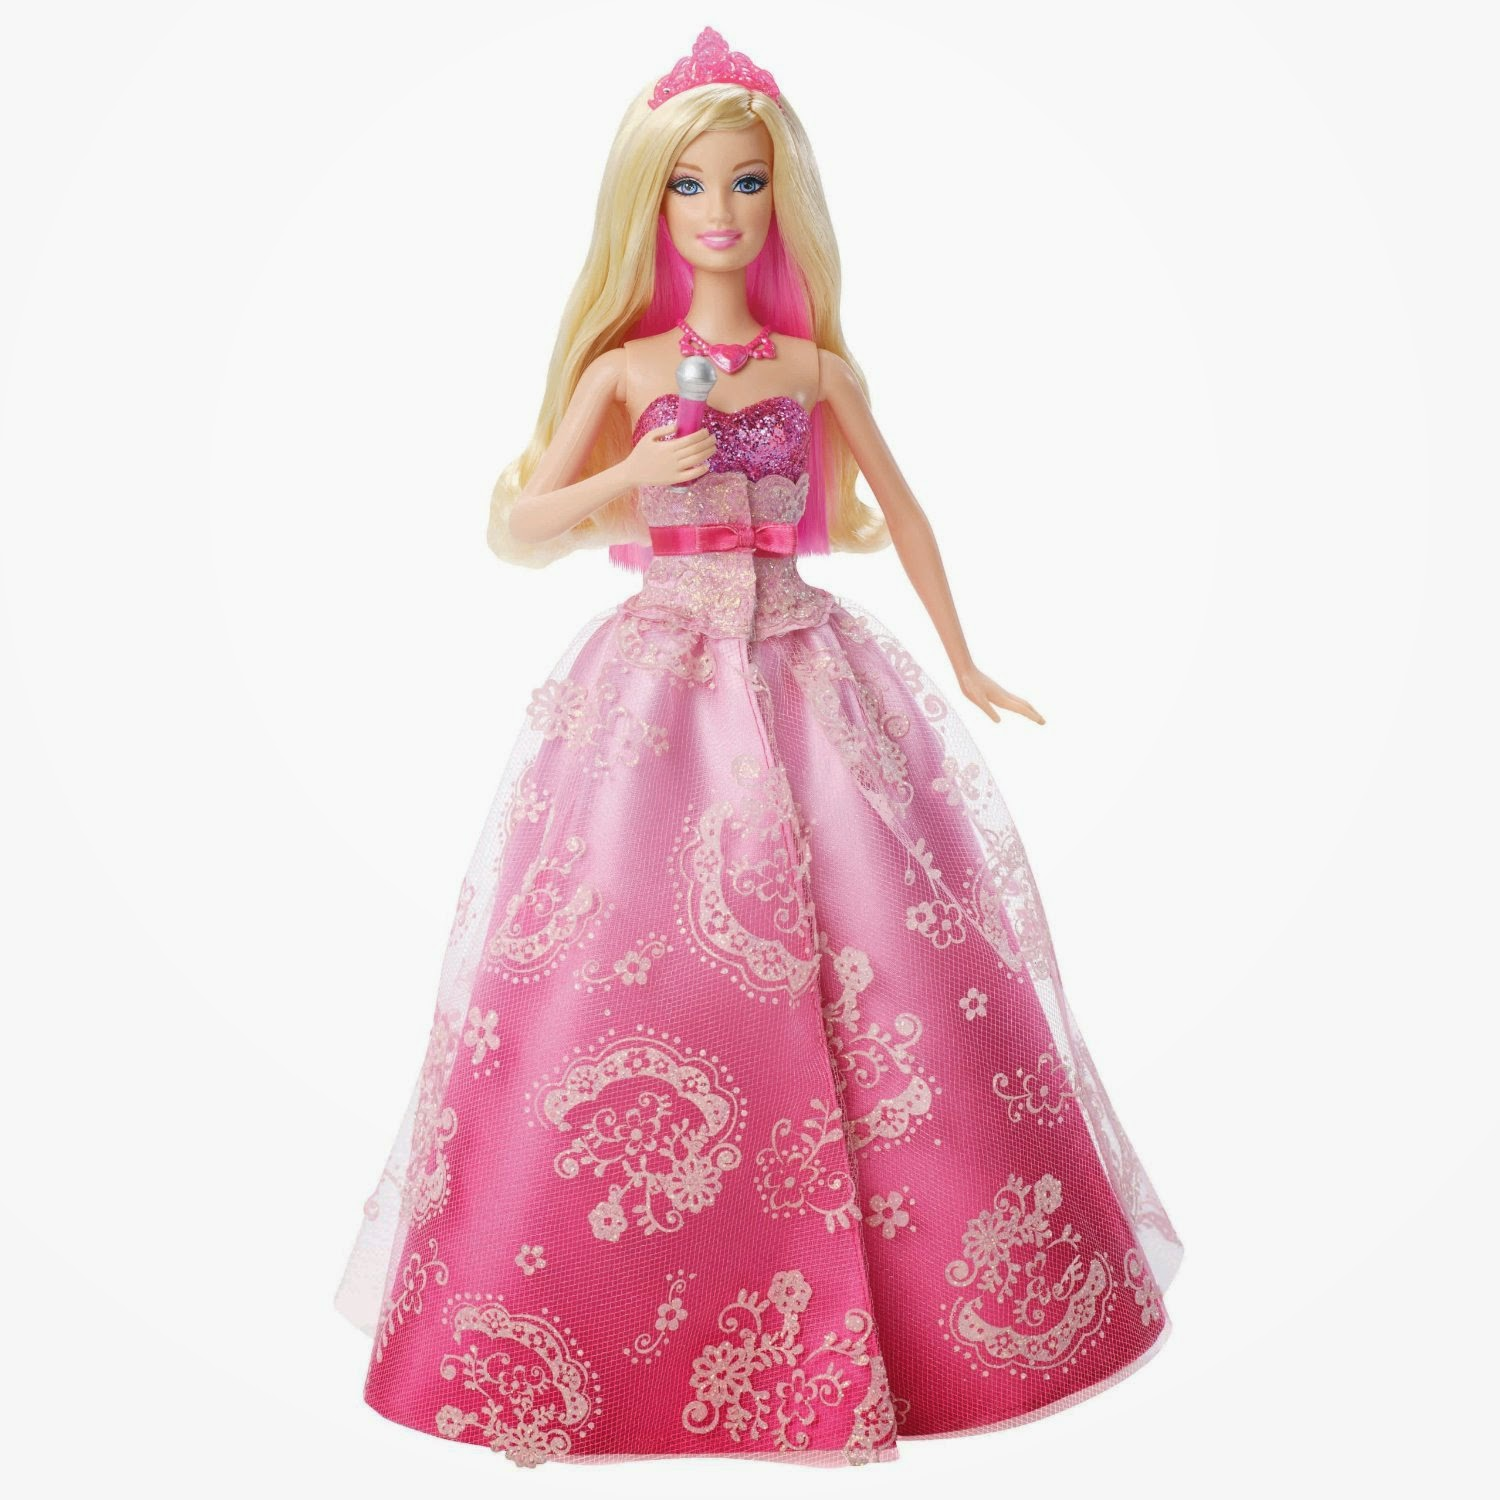 Barbie Images Wallpapers Free Download